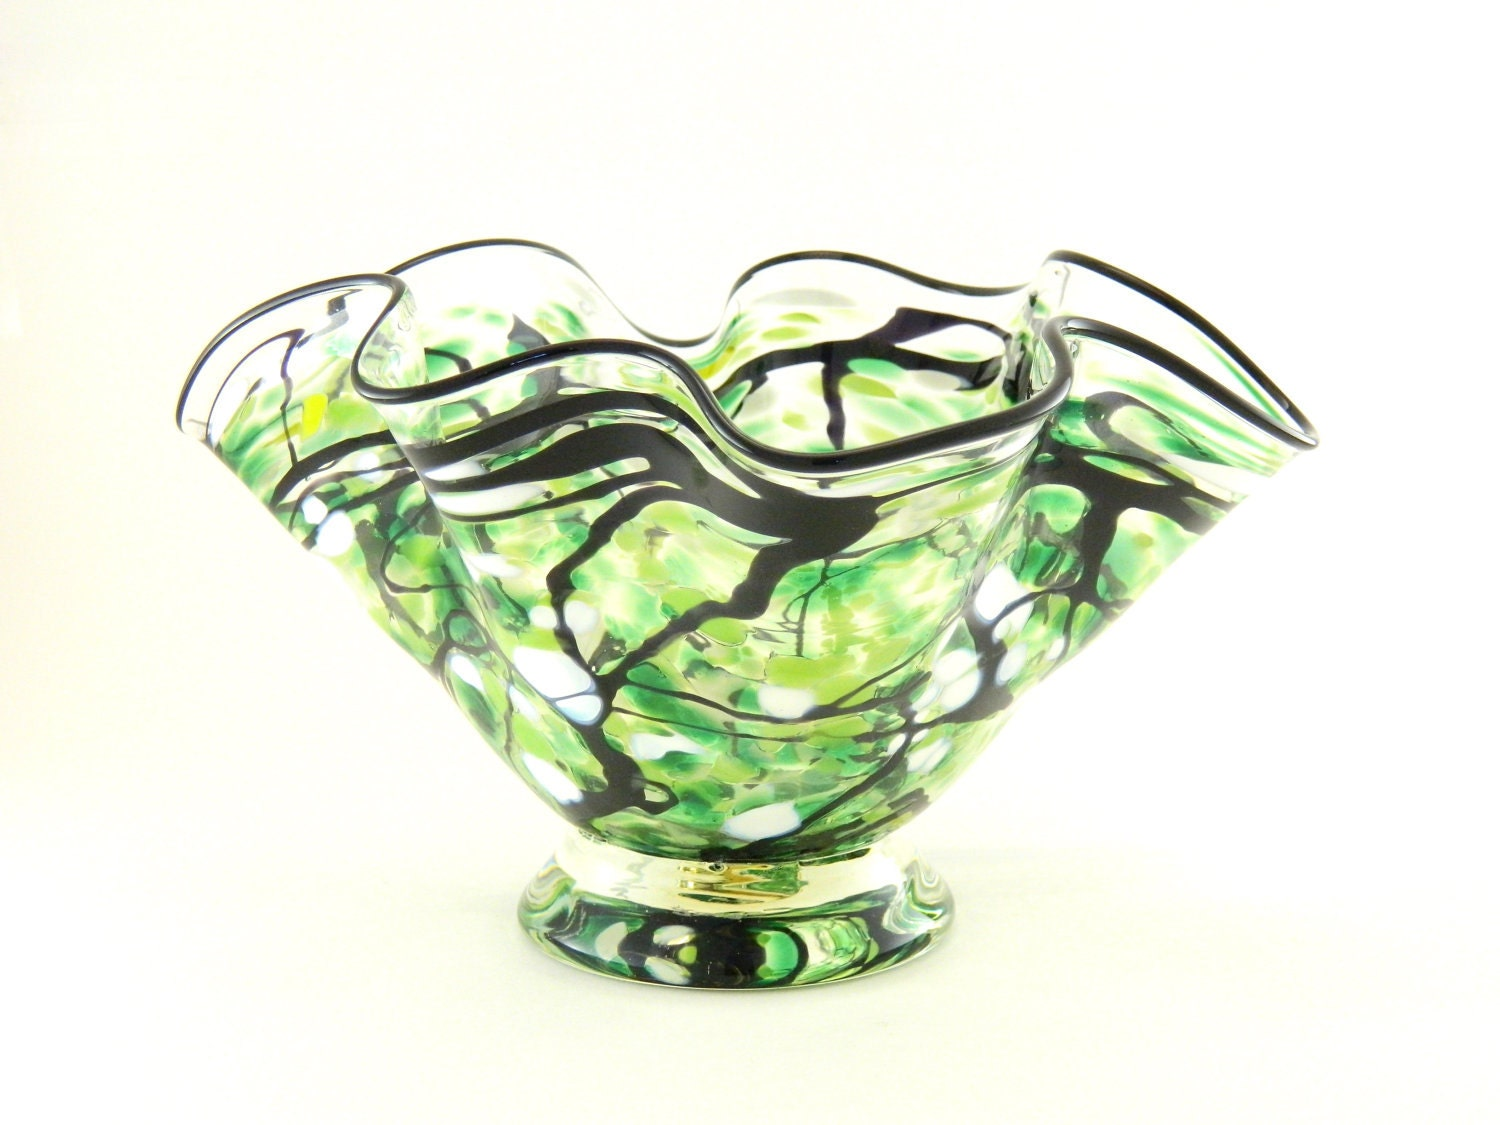 Hand Blown Art Glass Bowl - Freeform - Emerald Green, Apple Green, White, and Black - ParadiseArtGlass